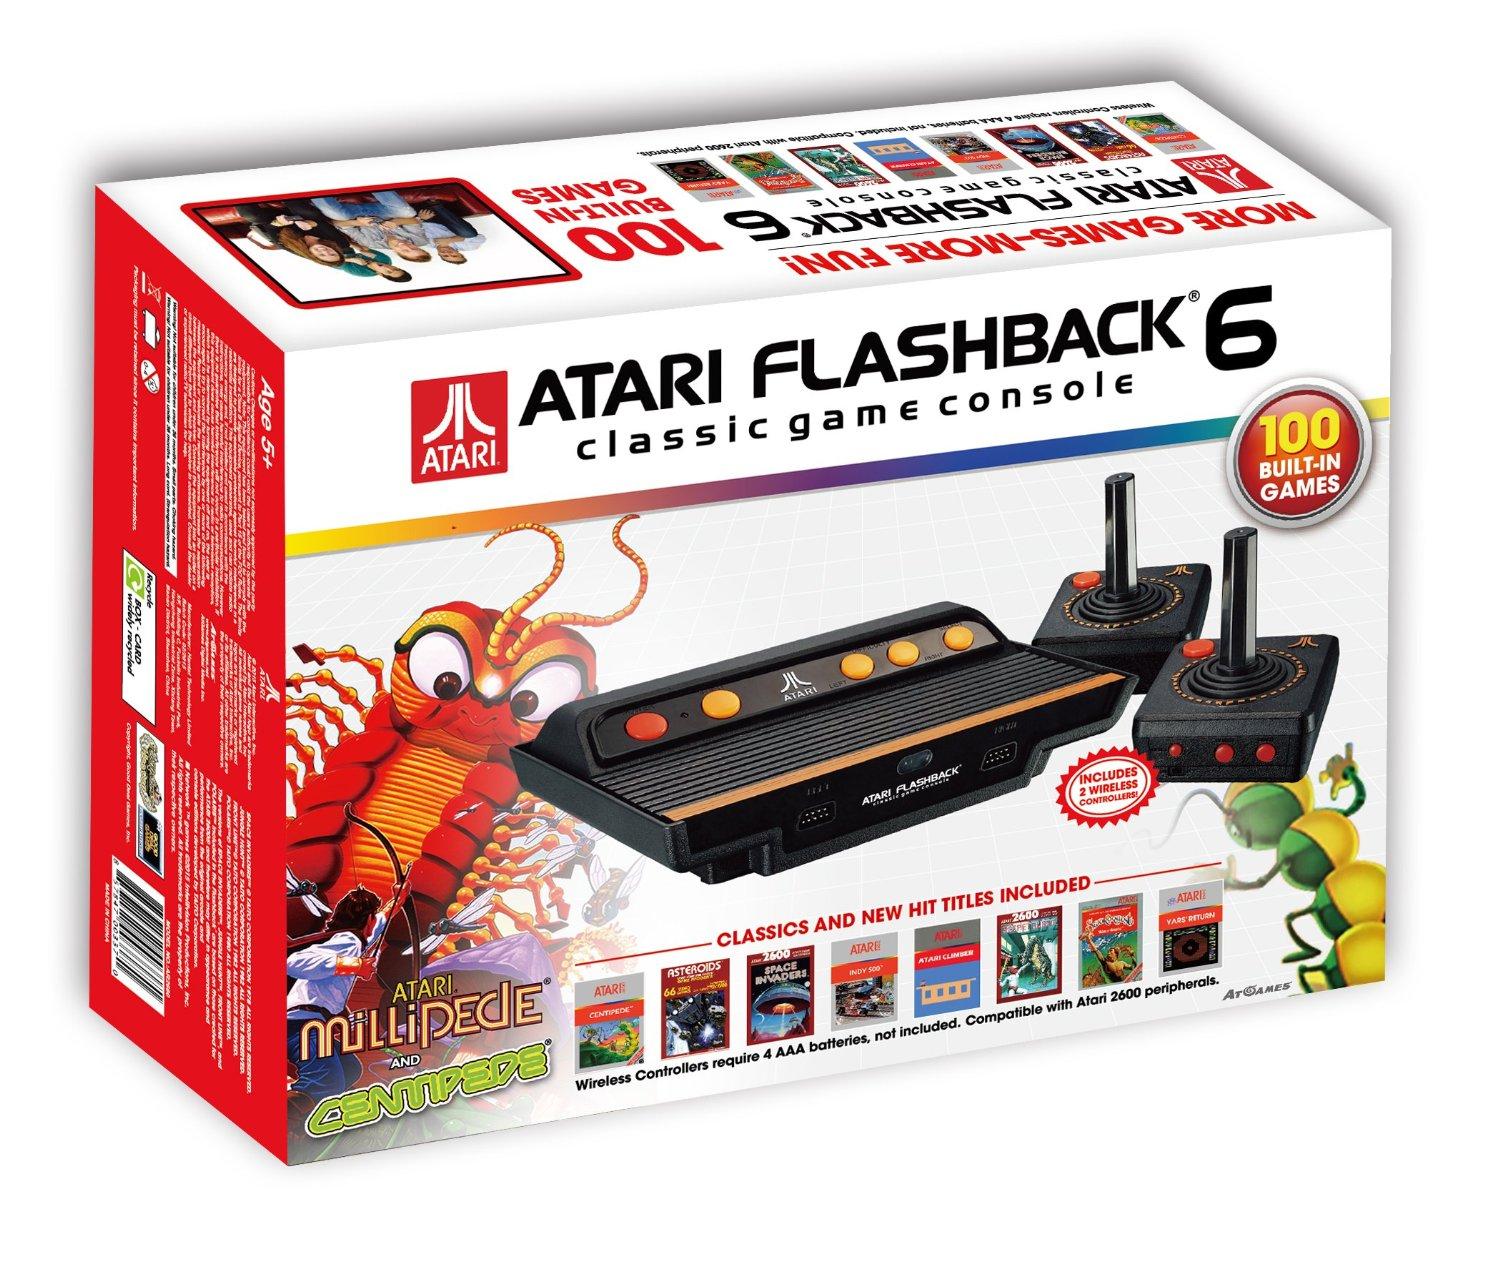 Atari flashback 6 the official game list - Atari flashback classic game console game list ...